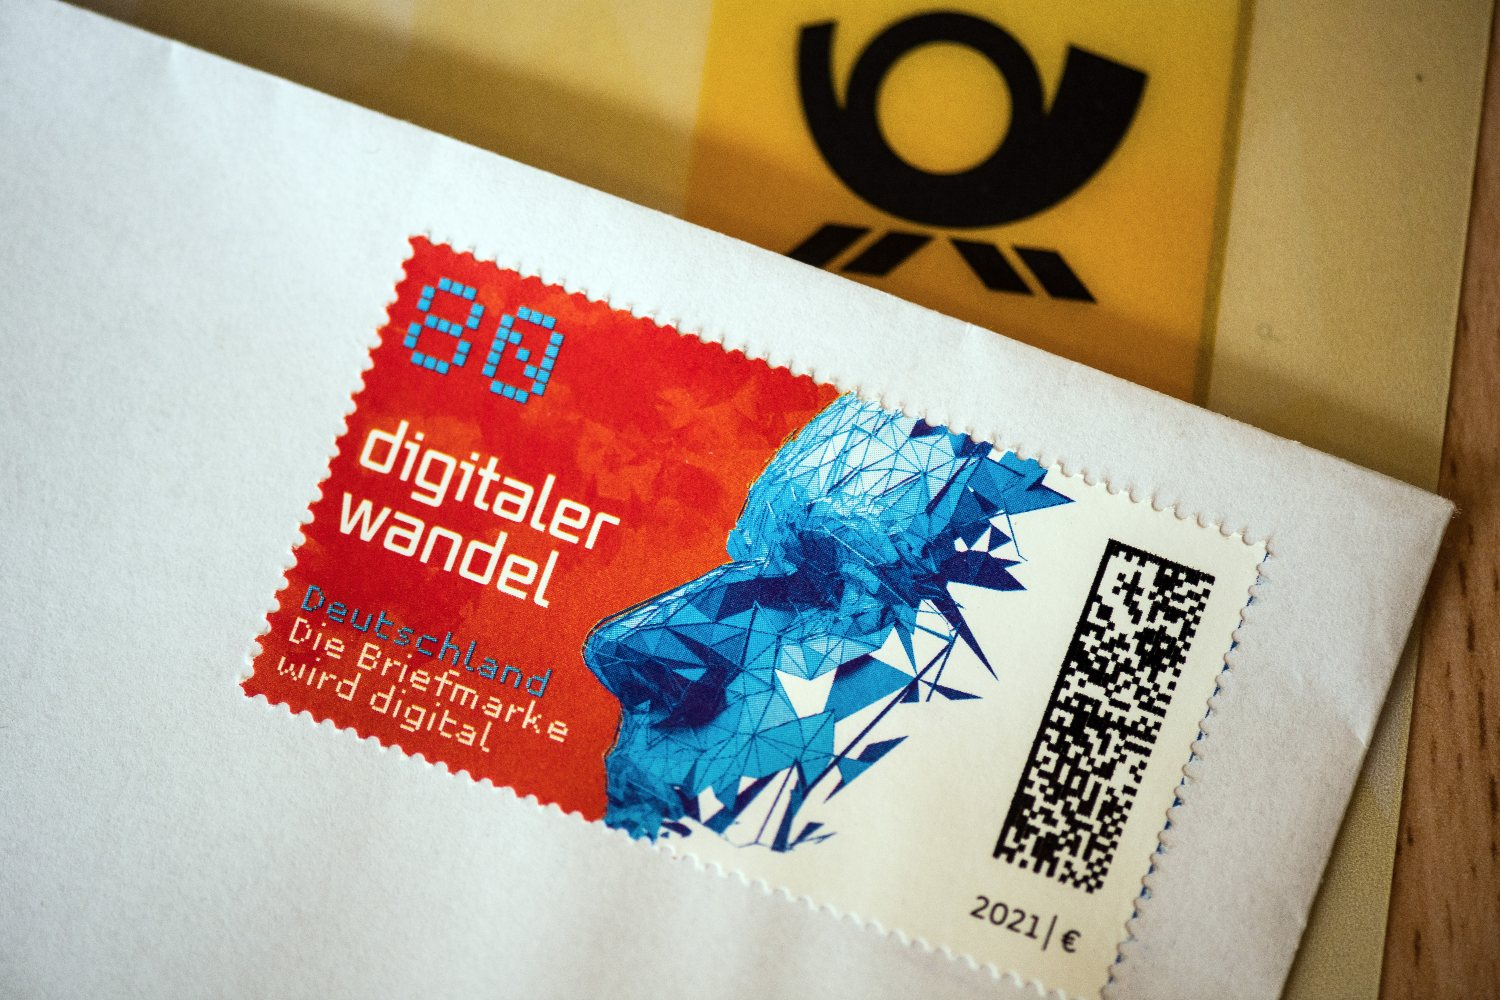 'A new generation of stamps': Deutsche Post rolls out QR-style tracking codes